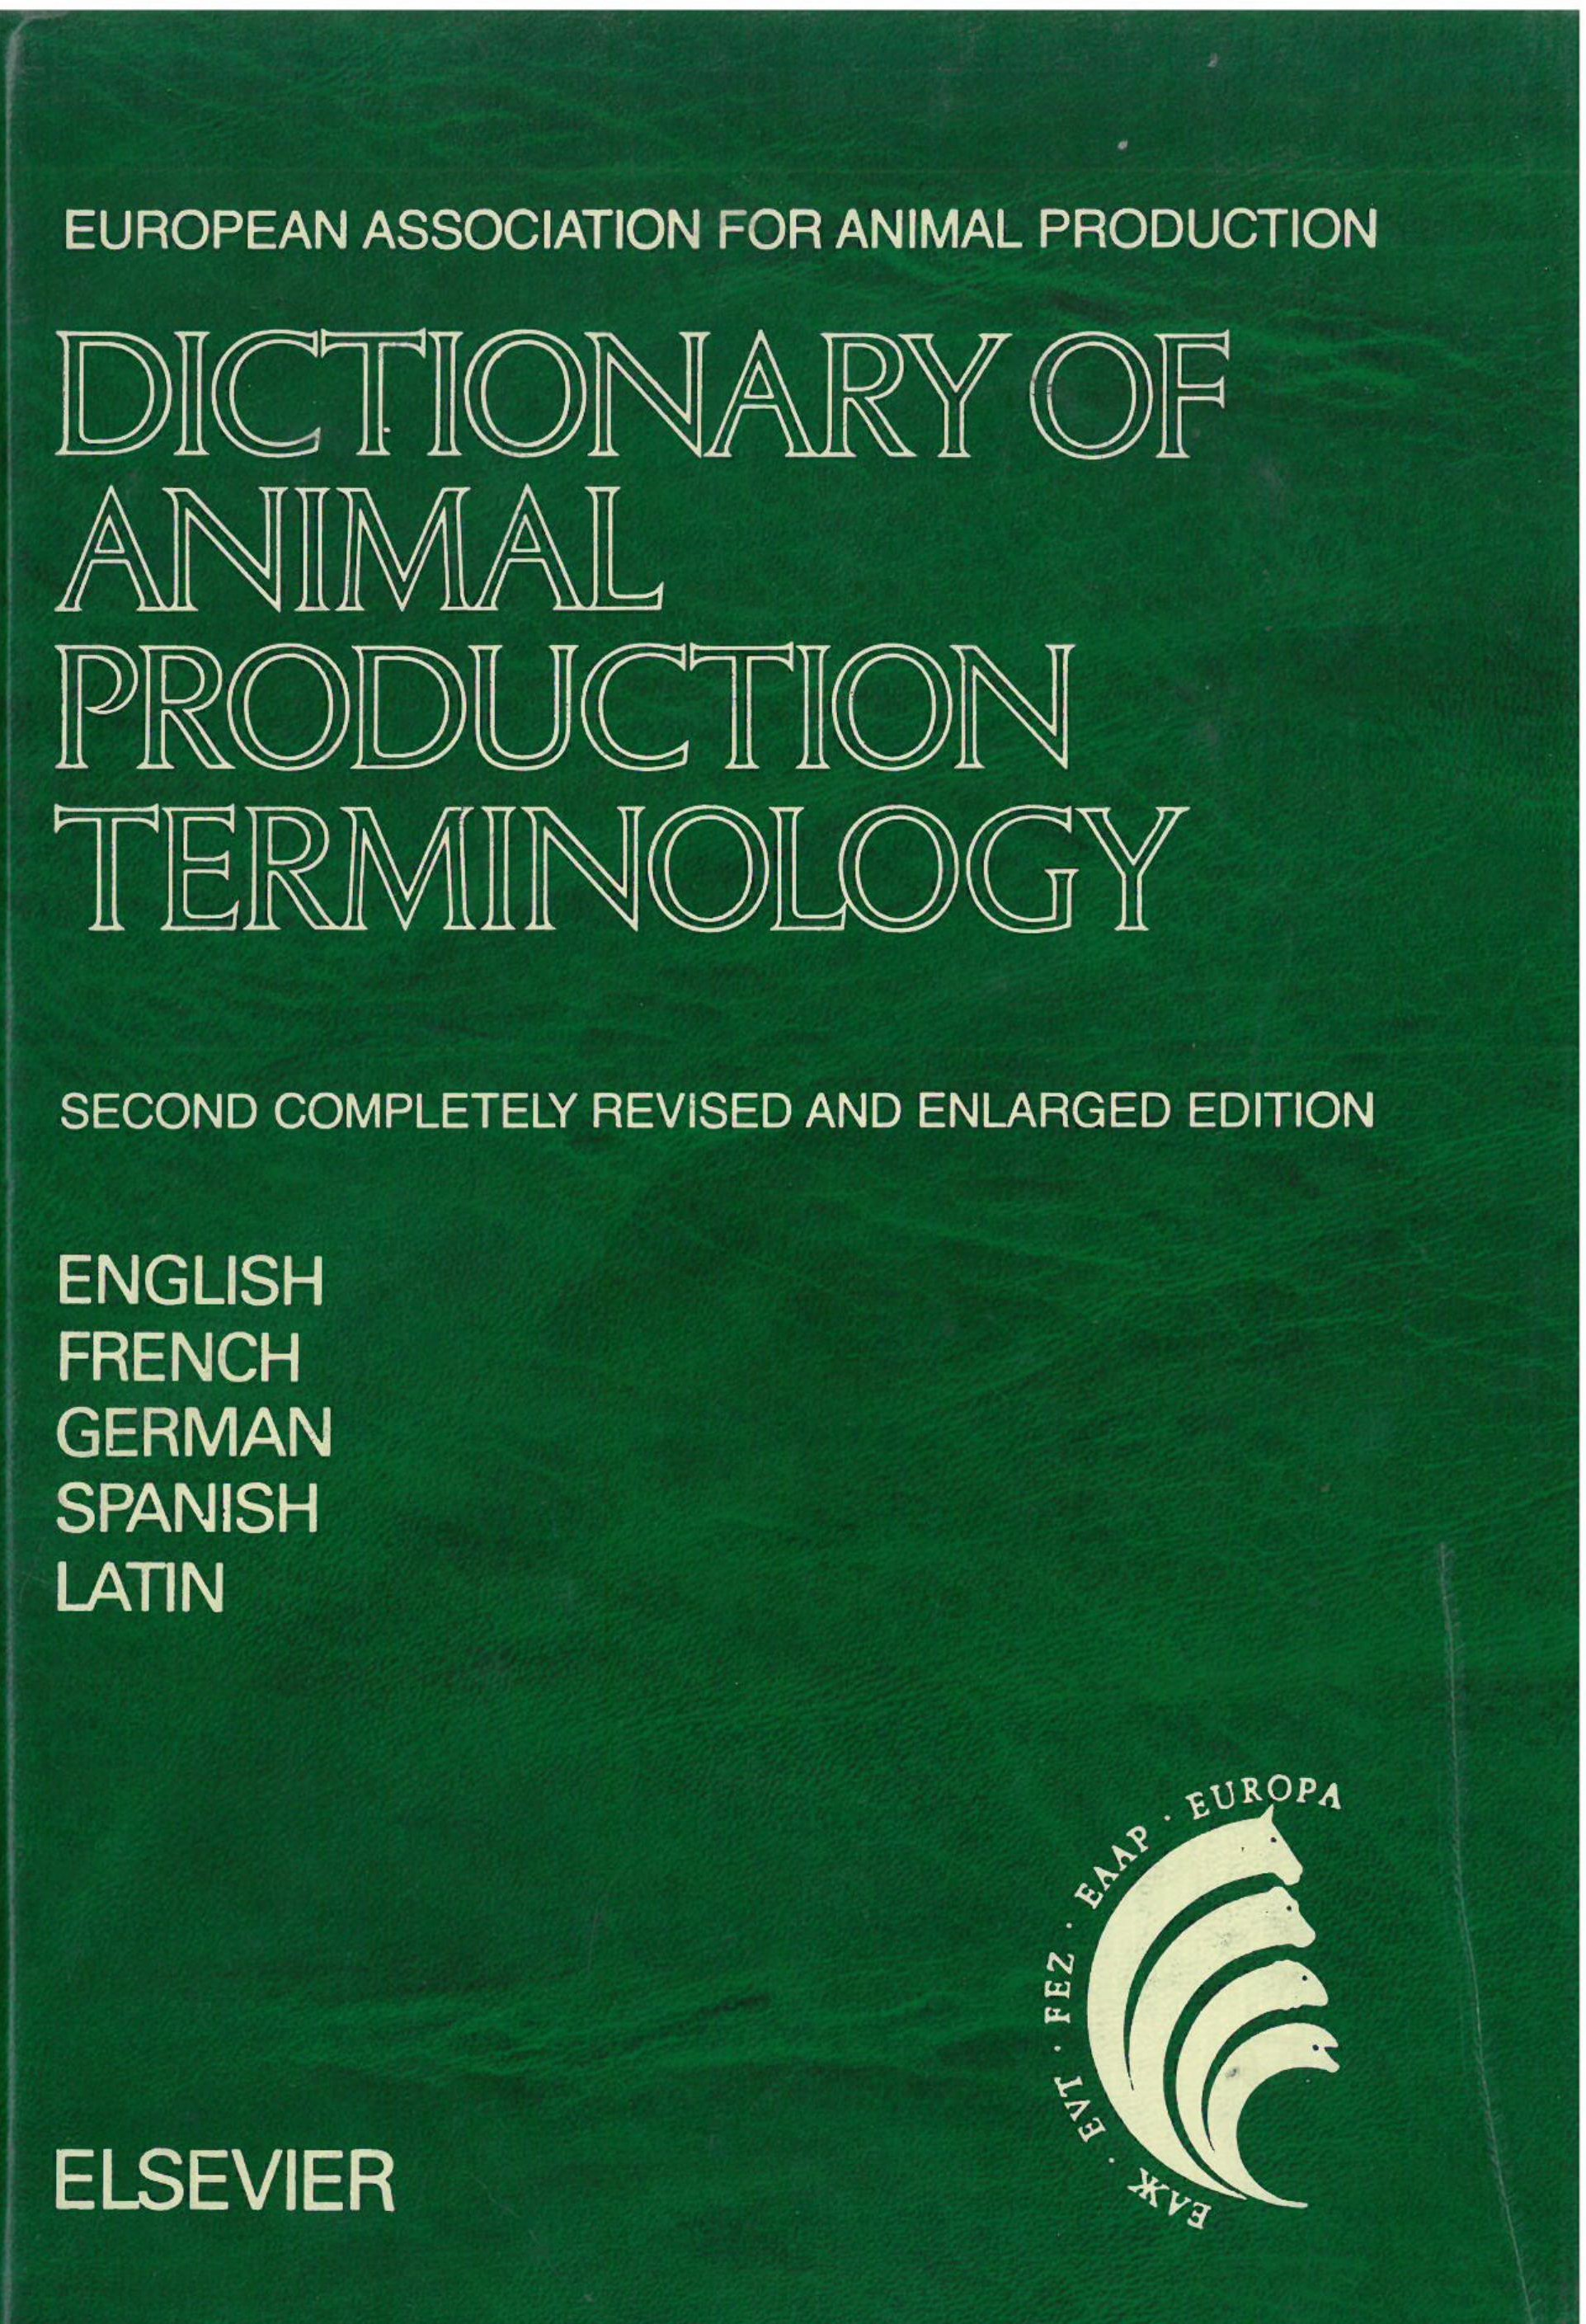 Dictionary of animal production terminology